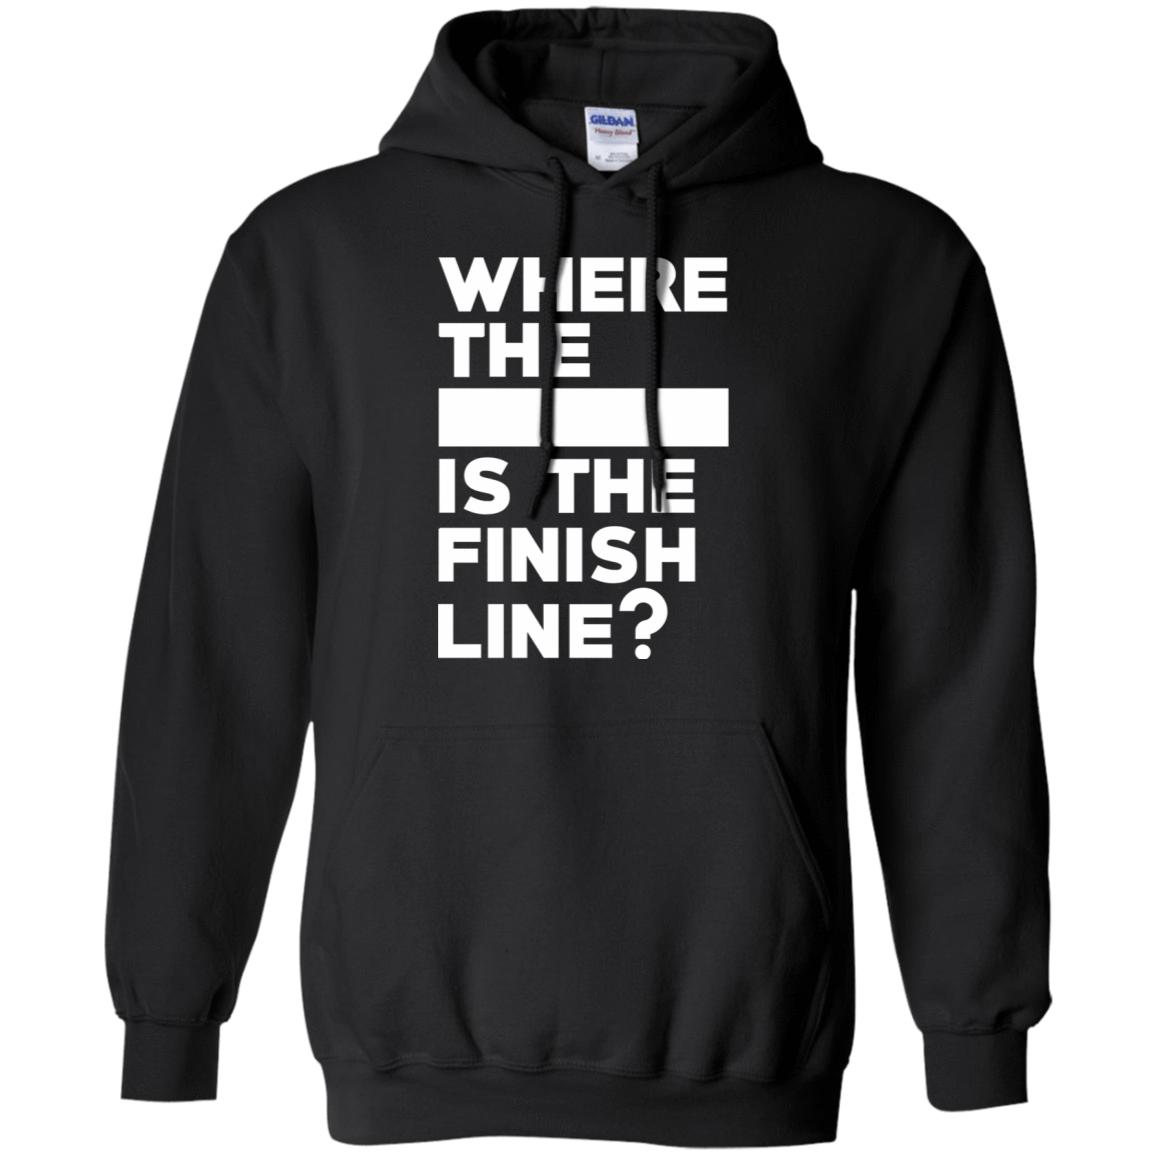 Where The Blank Is The Finish Line T-Shirts, Hoodie, Tank 541-4740-78127883-23087 - Tee Ript